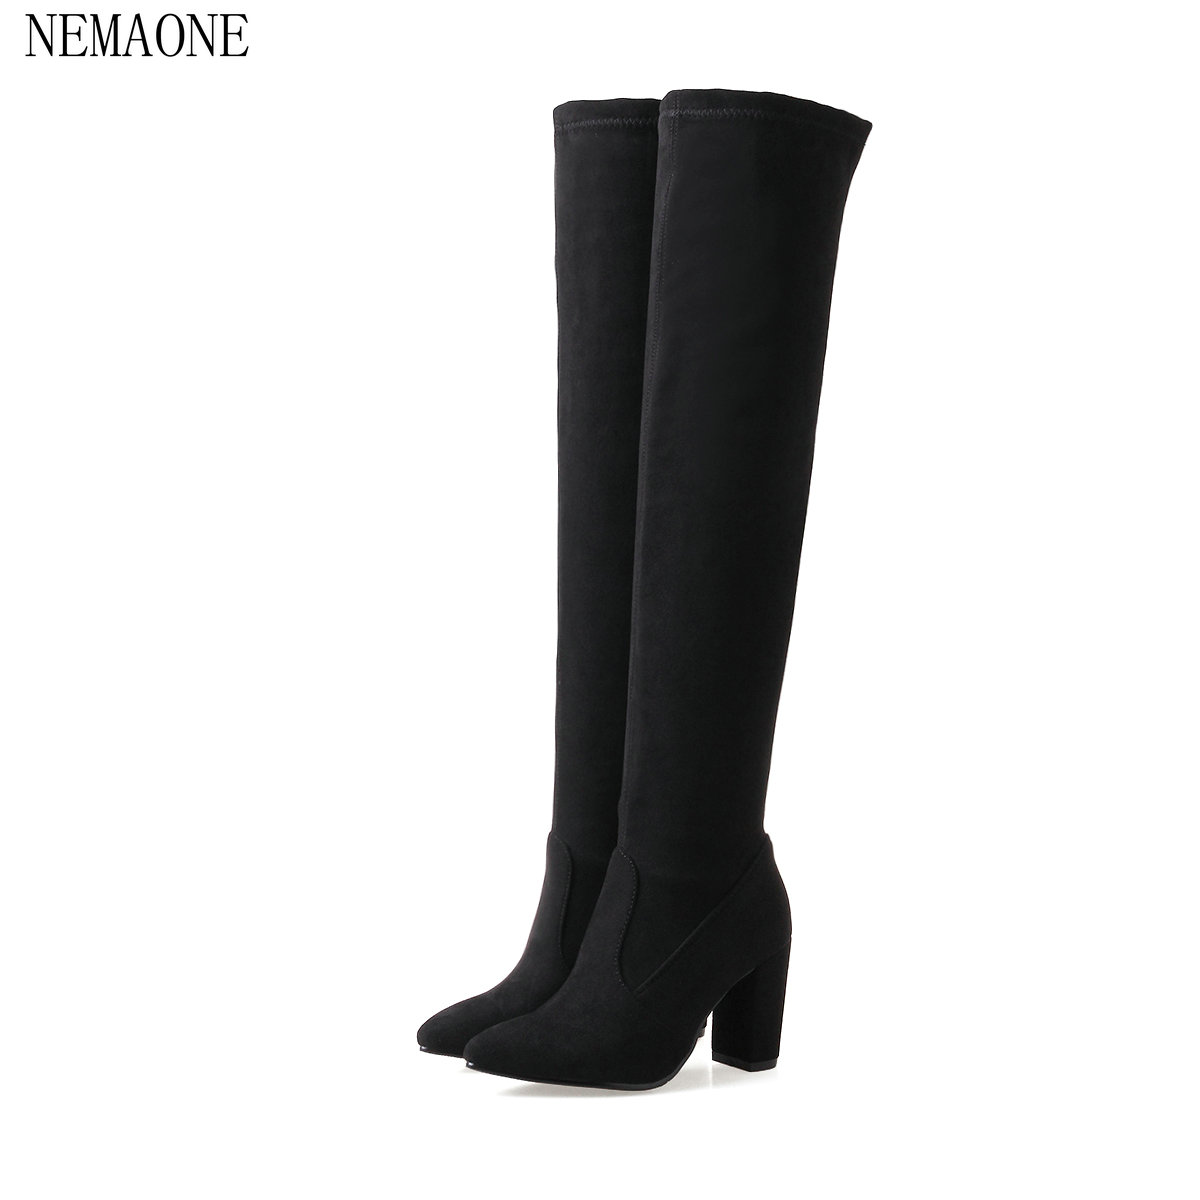 NEMAONE 2018 Women Over The Knee High Boots Solid Fashion Square Heel Round Toe Women All Match Women Motorcyle Boots Size 34-43 qutaa 2017 women over the knee high boots all match pointed toe high quality thin high heel pointed toe women boots size 34 43